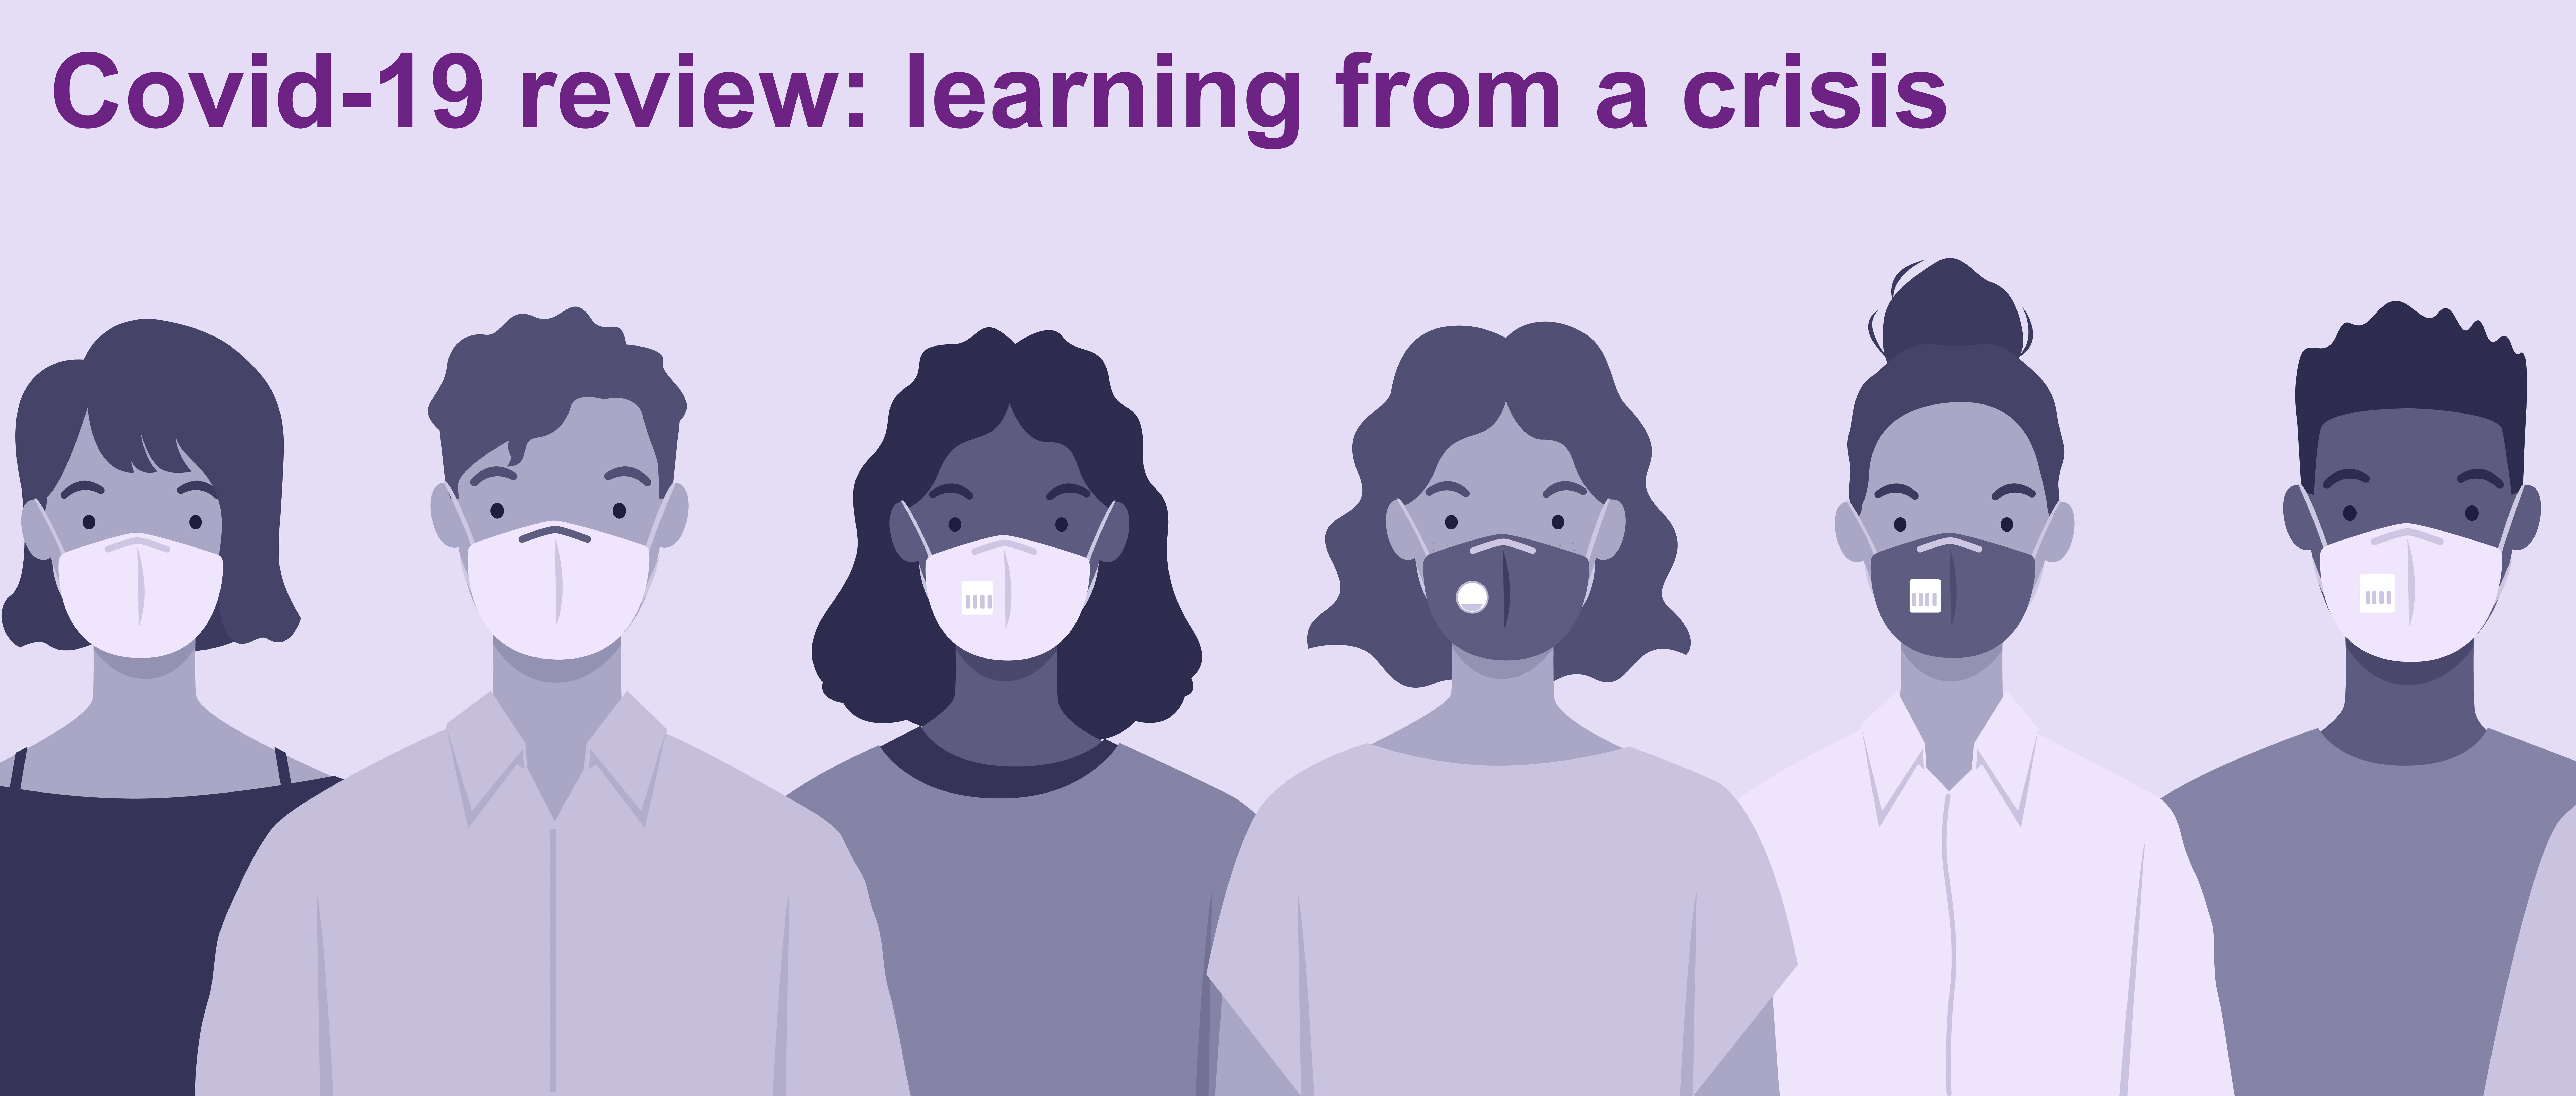 Covid 19 learning from a crisis